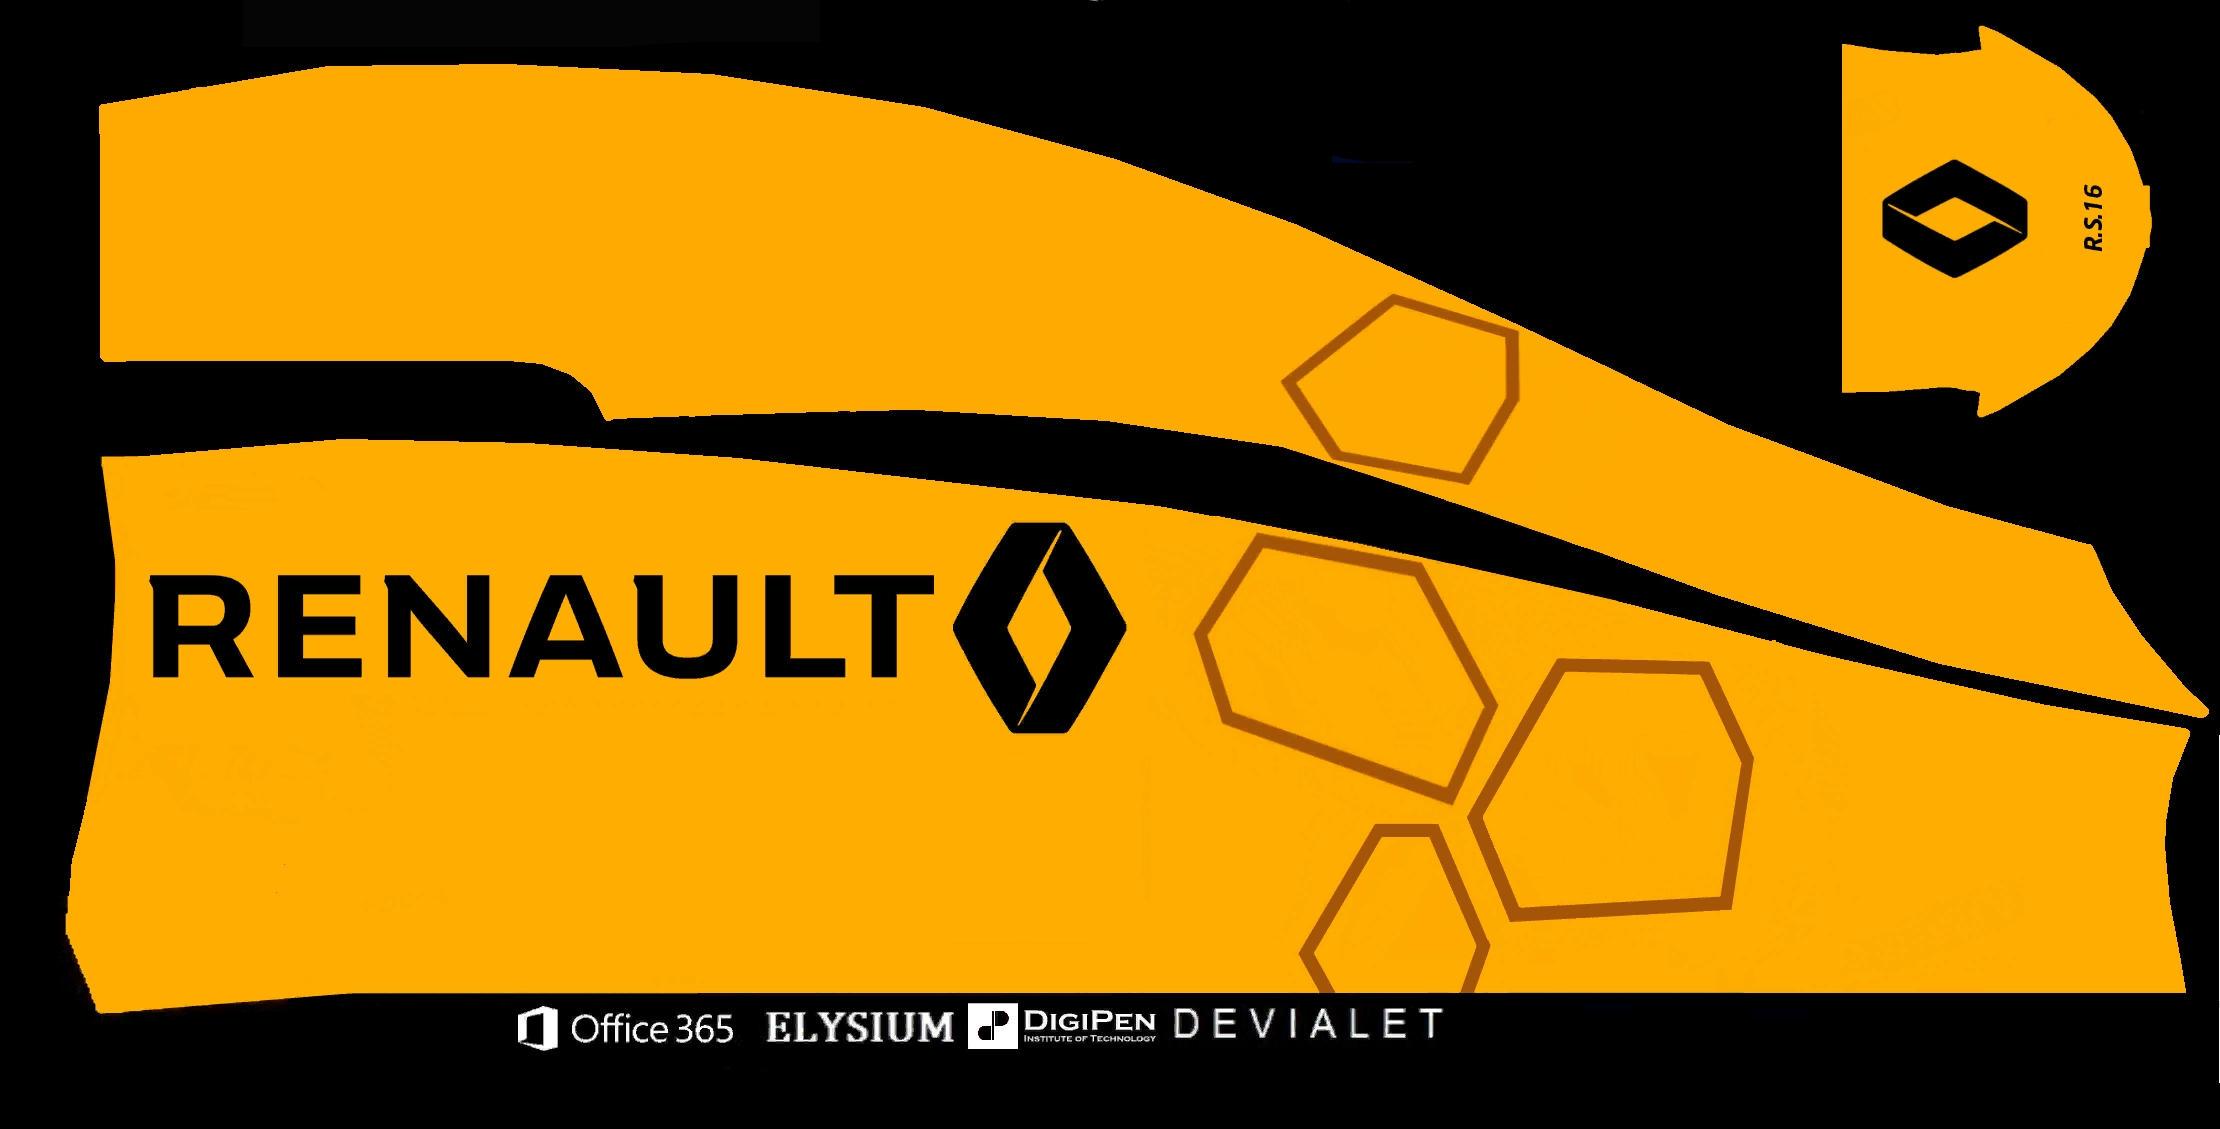 Renault_New_Logo_Font_Decals_Livery.jpg